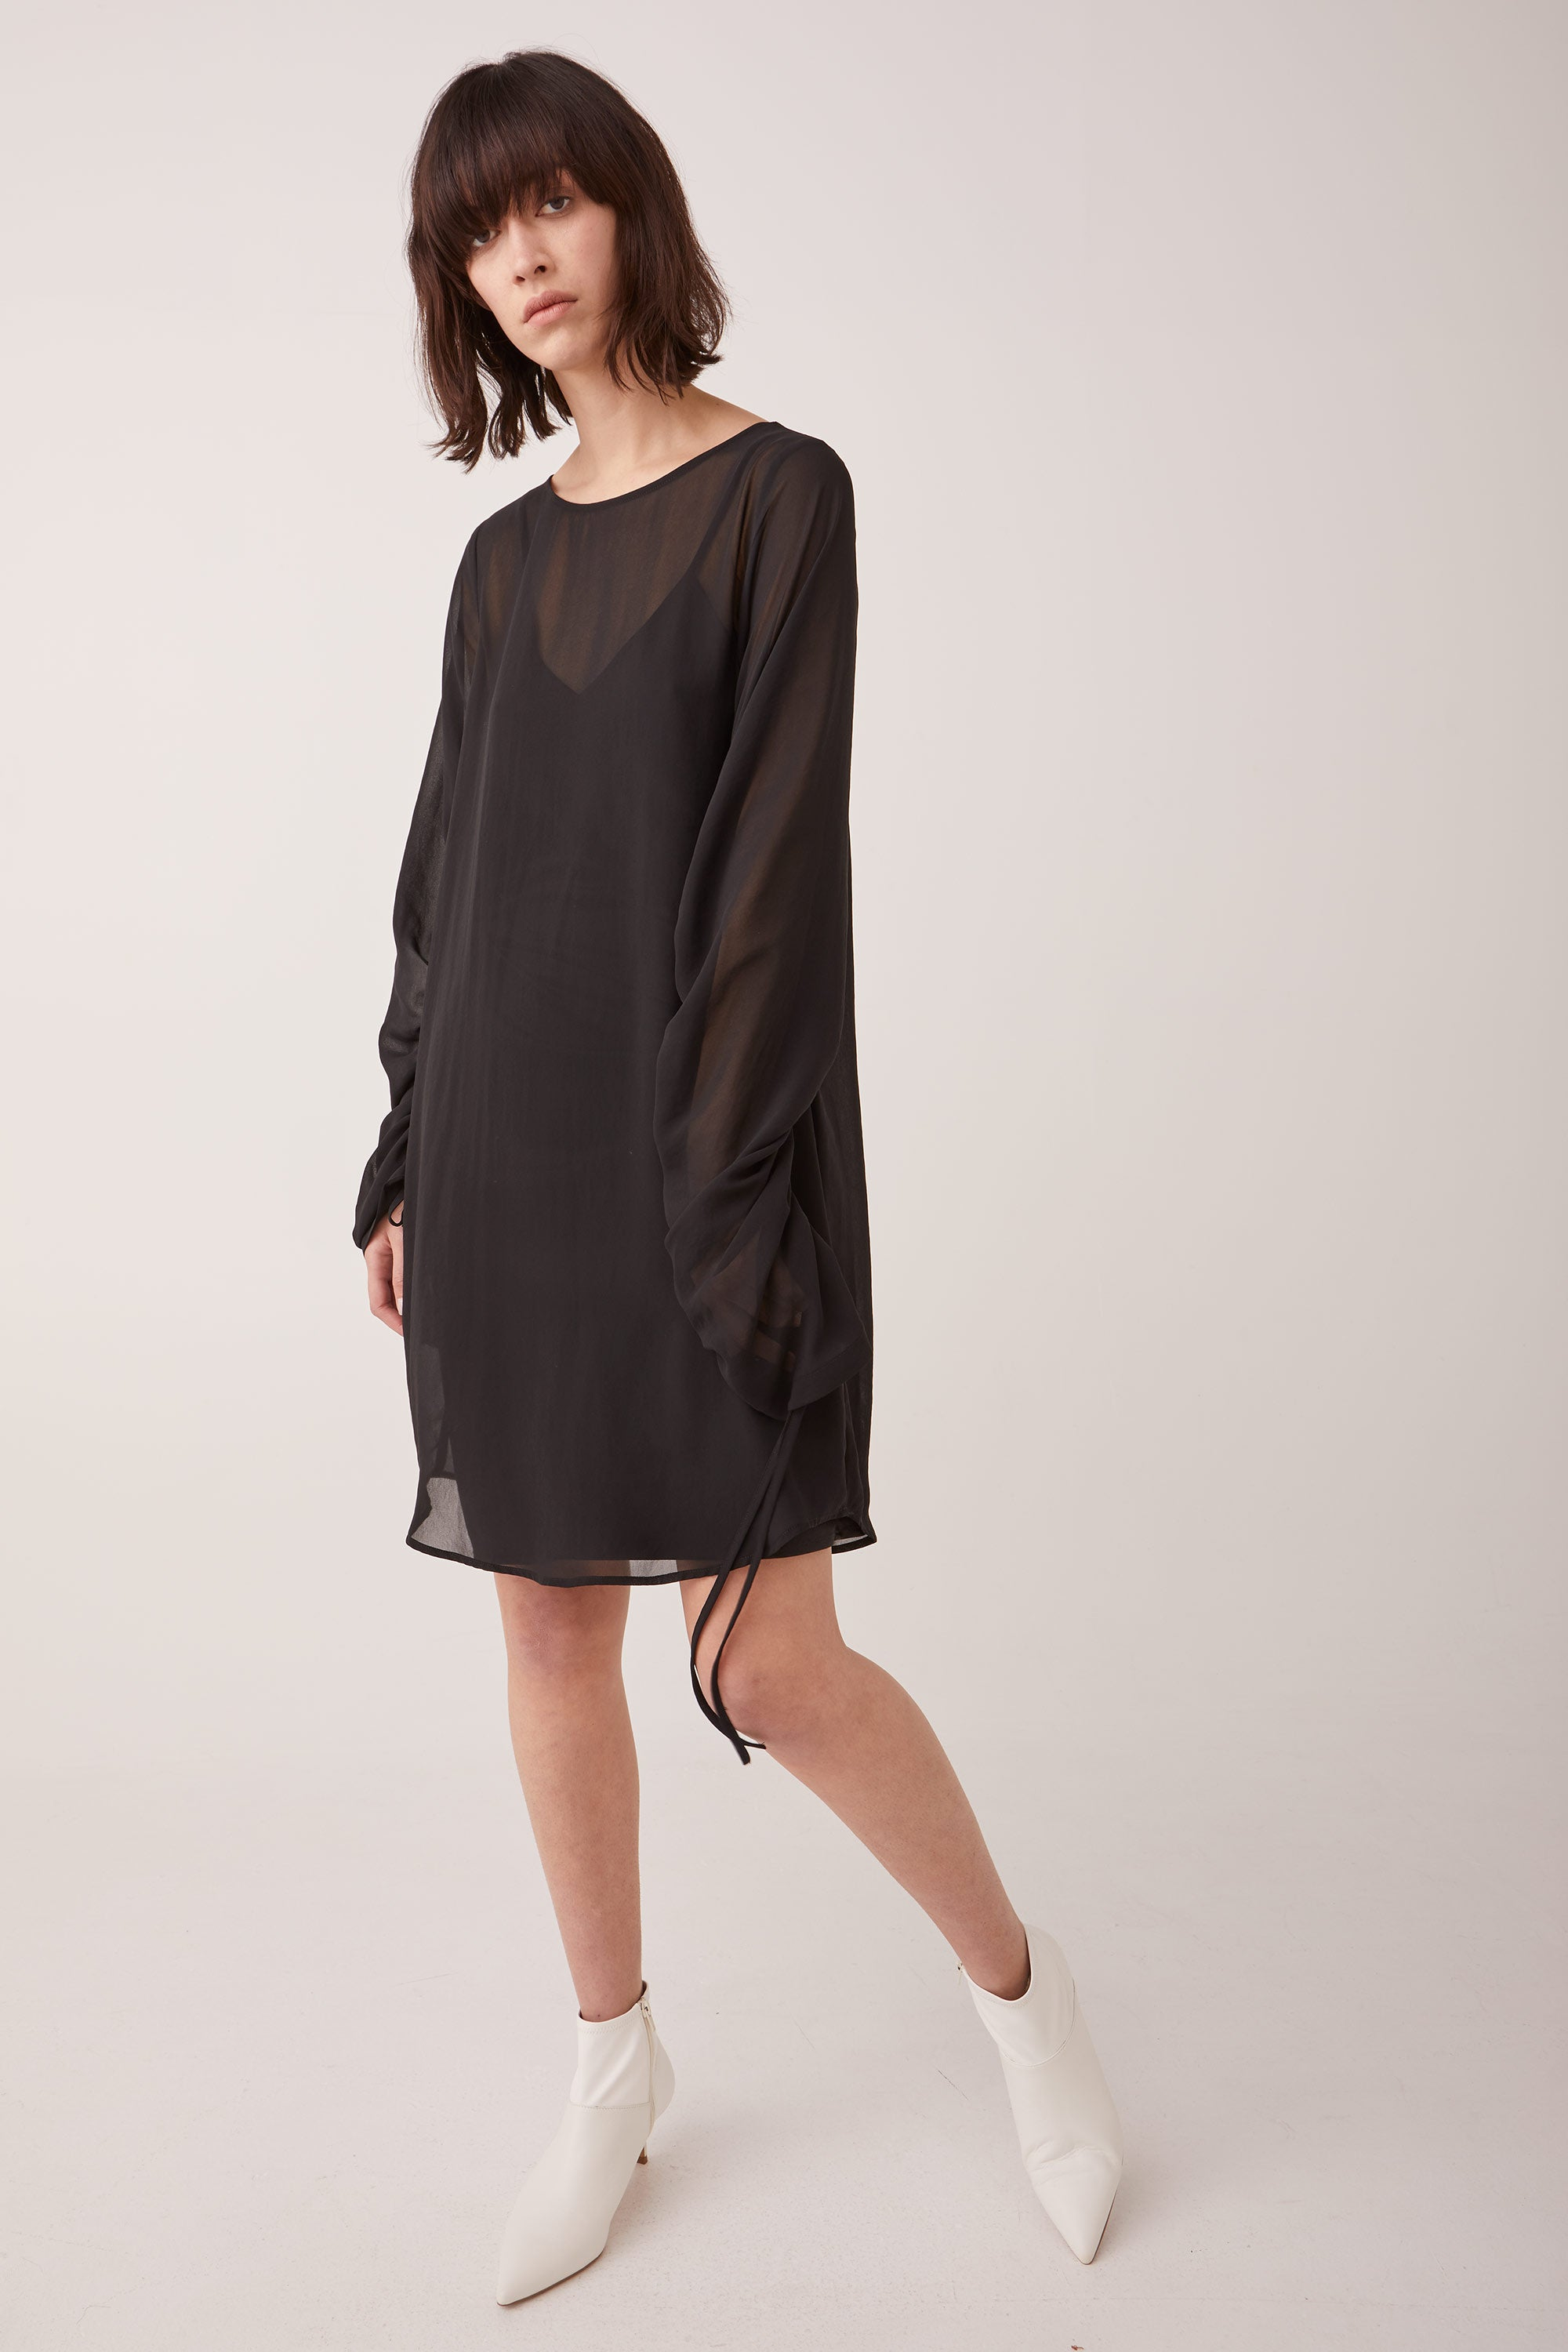 Ricochet NZ Fashion Designer Clothing Boutique AW19 Empty Dress Made in NZ